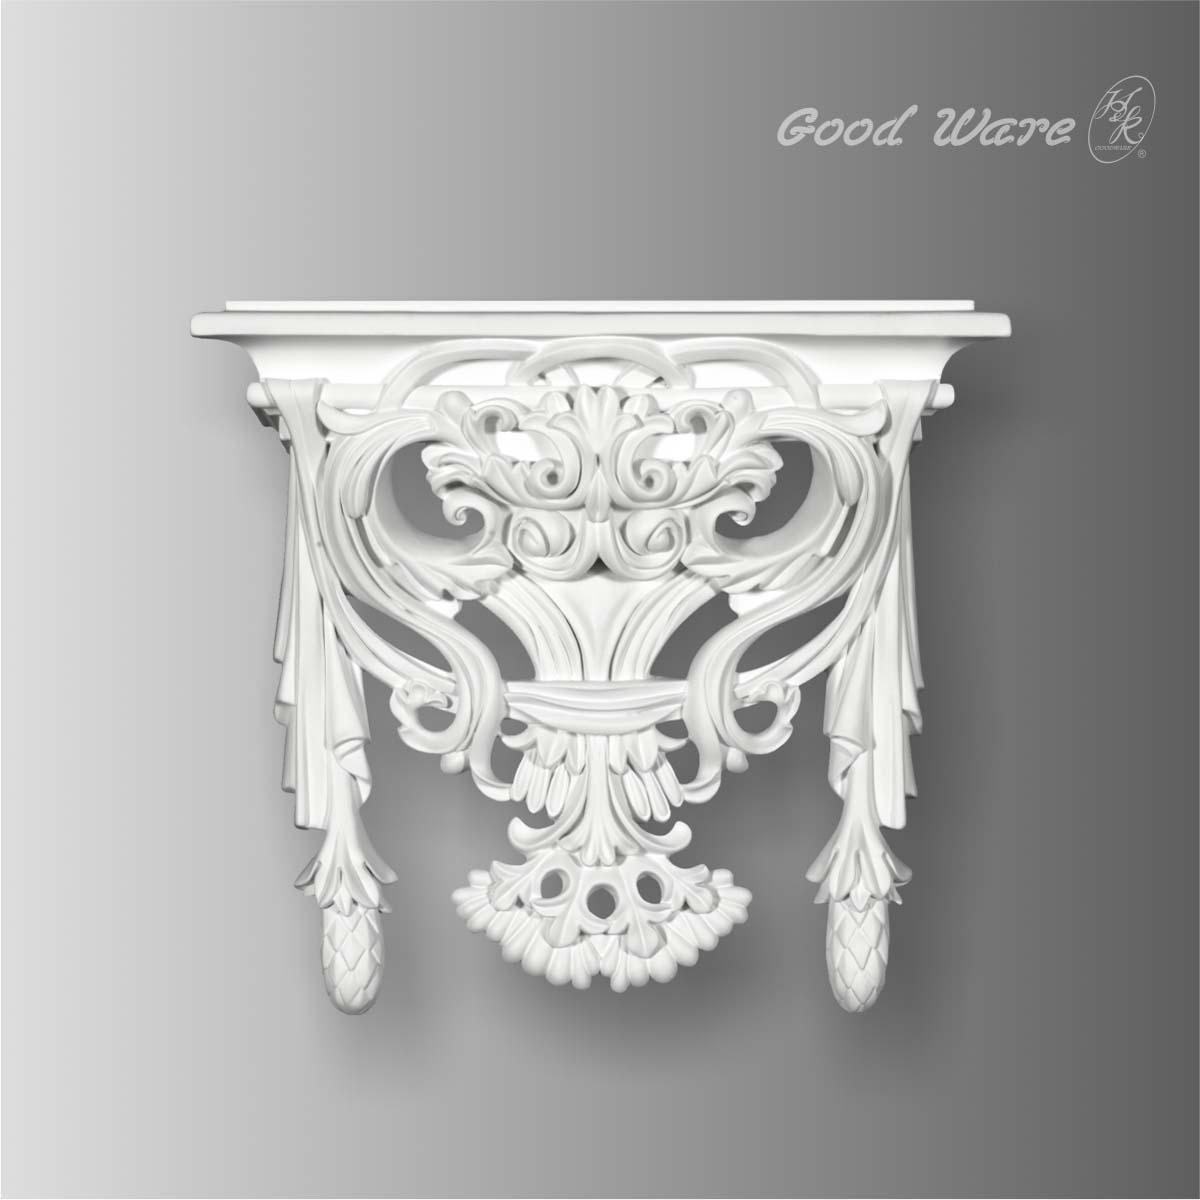 Polyurethane decorative wall decor shelves